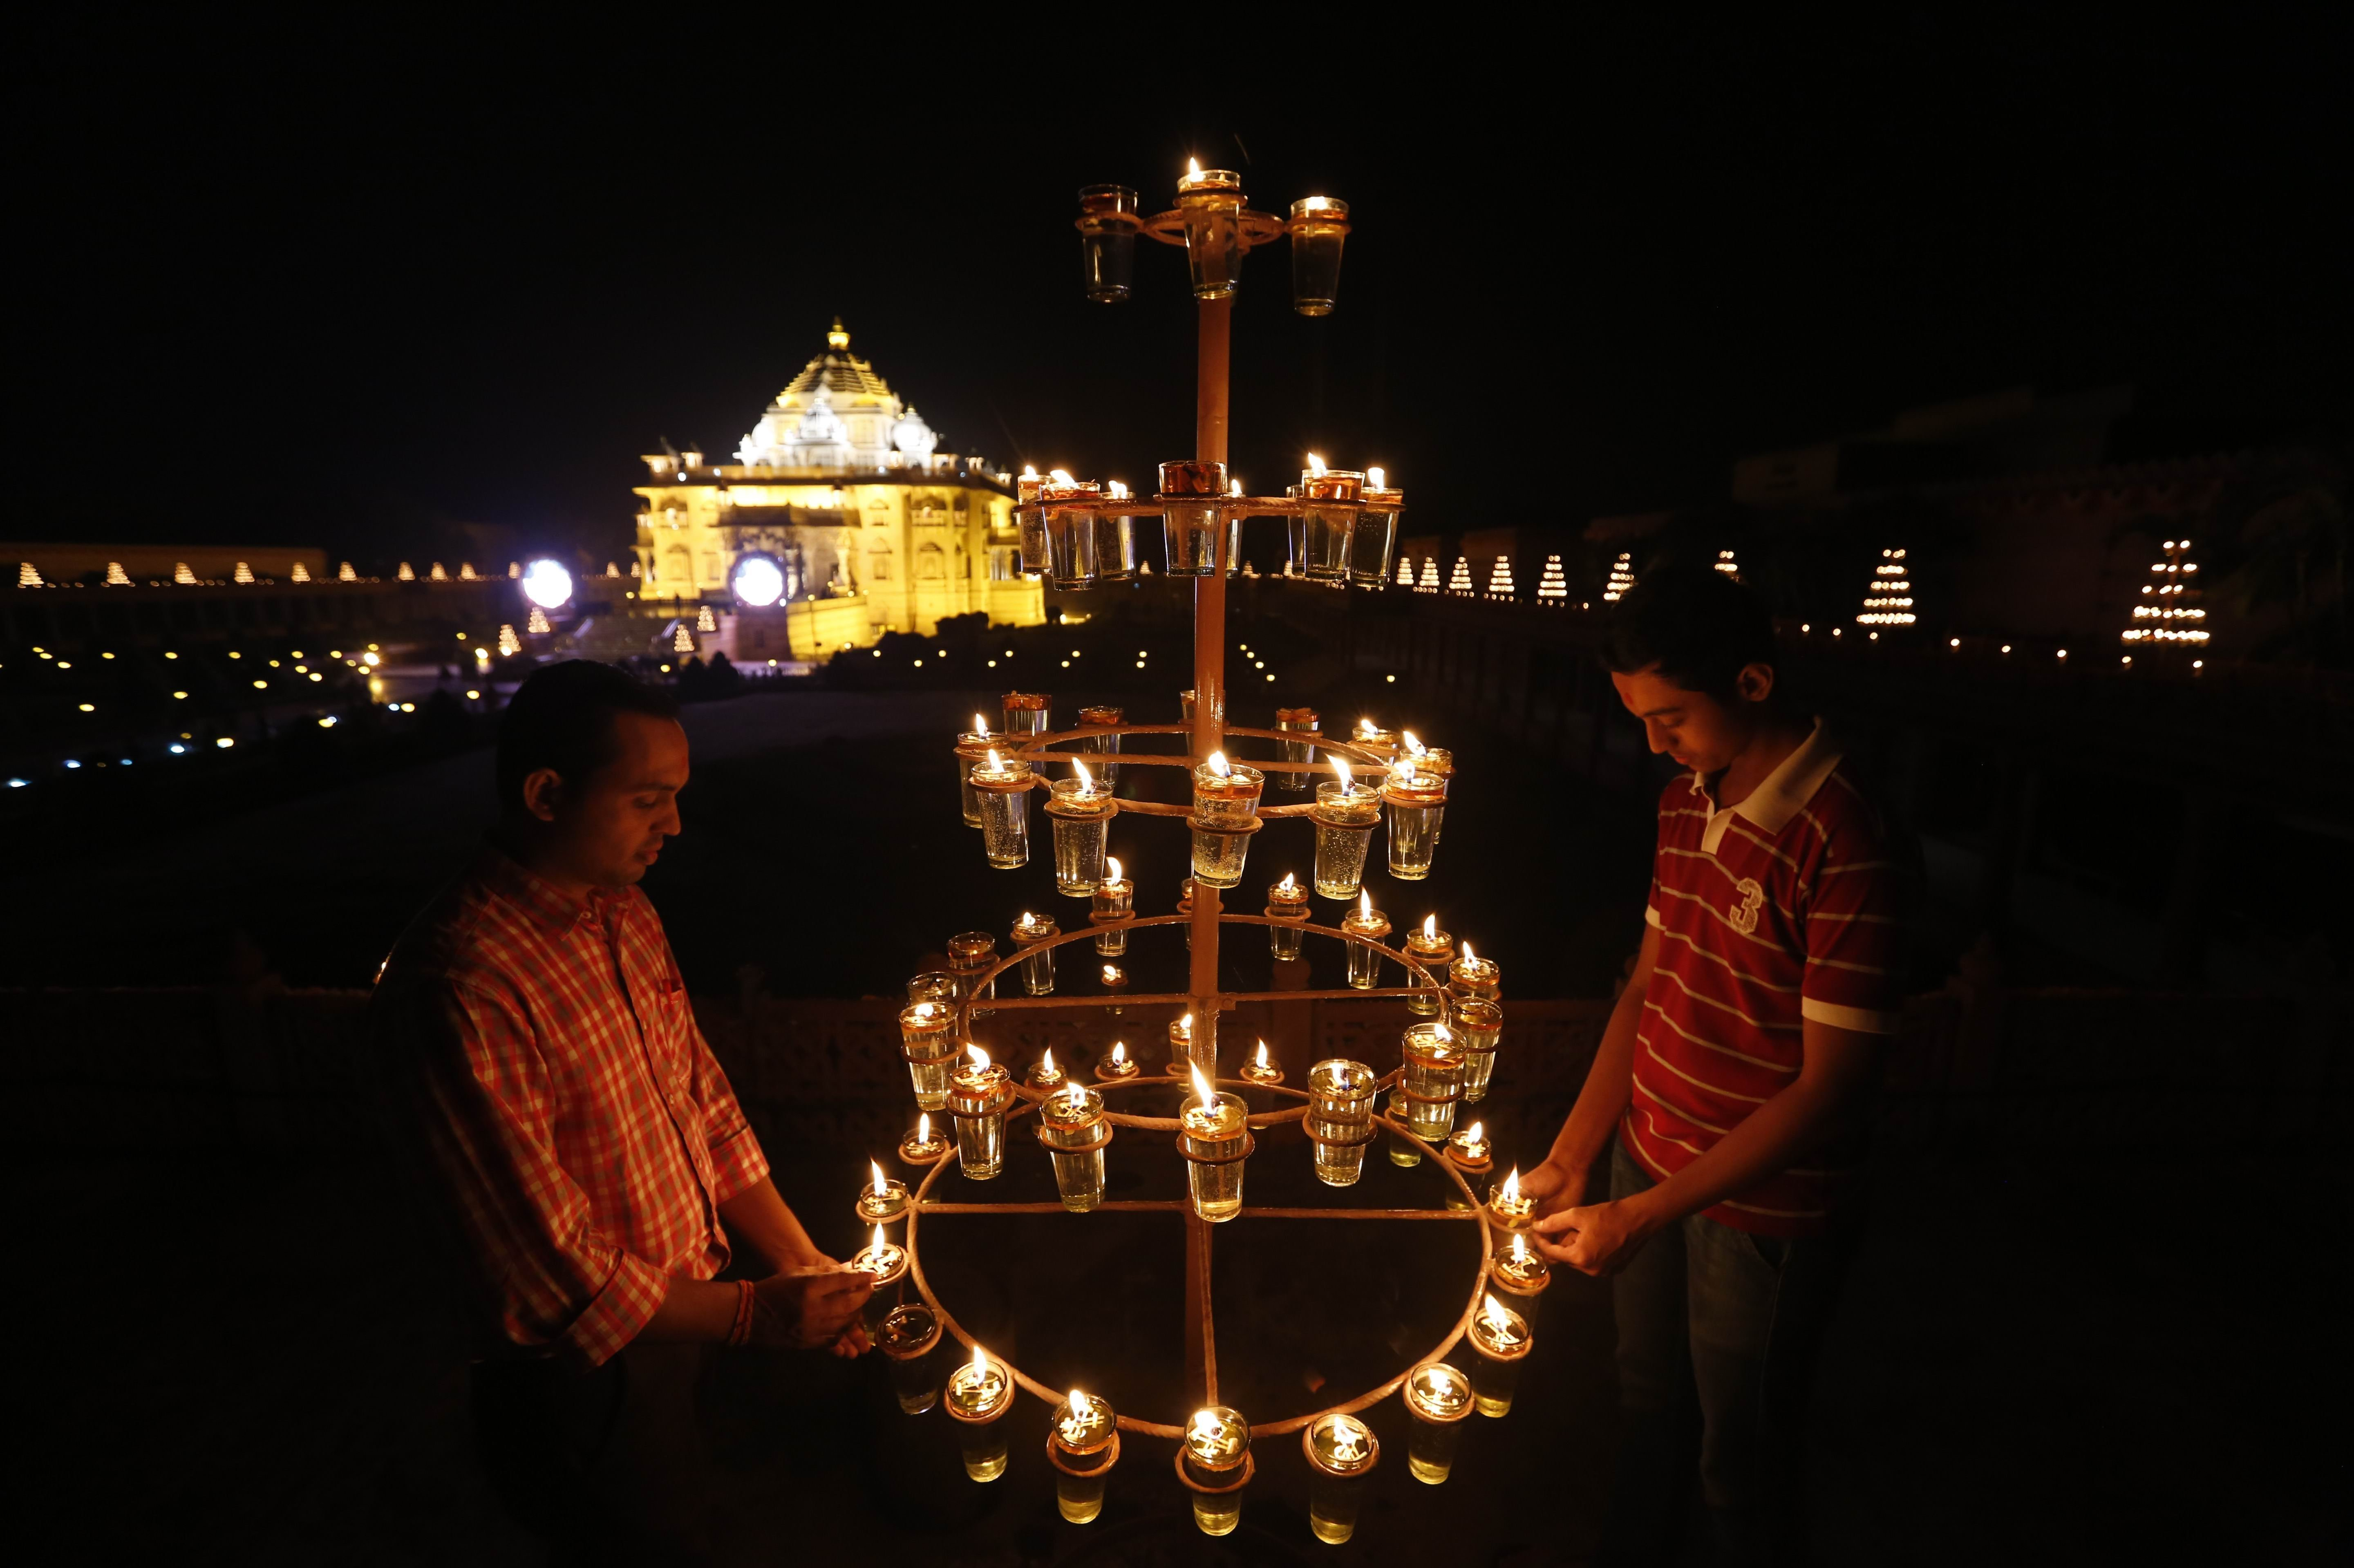 Indians Light Lamps At Akshardham Temple On The Eve Of Diwali, The Festival  Of Lights